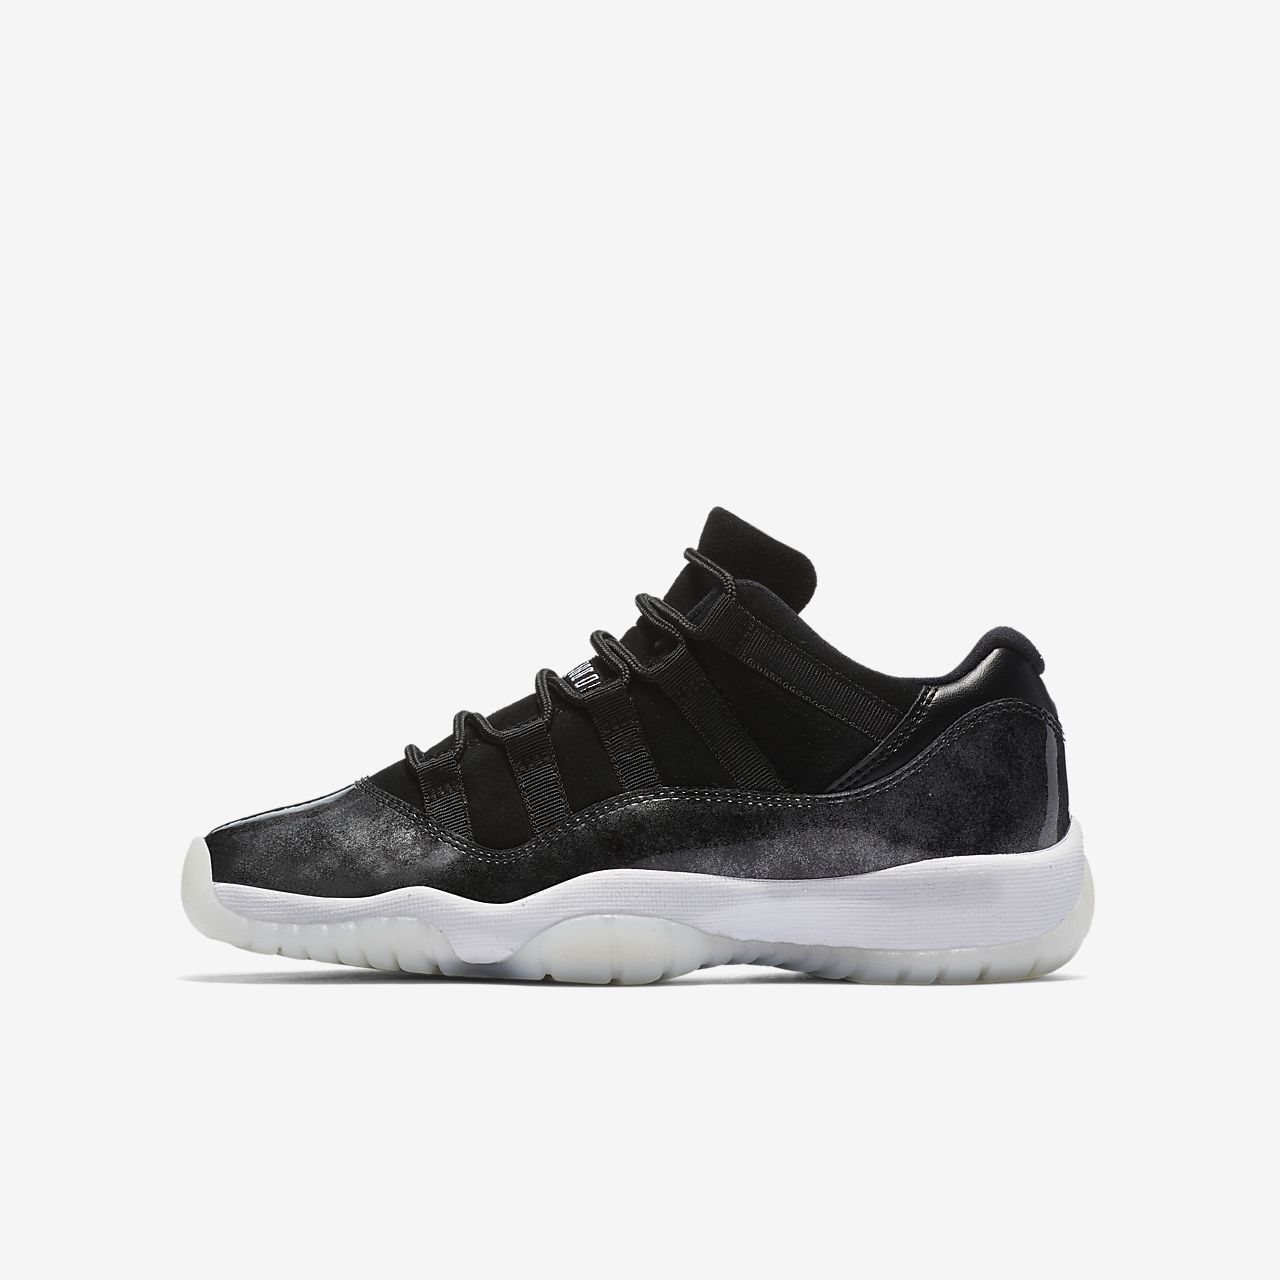 Air Jordan 11 Retro Low Older Kids' Shoe